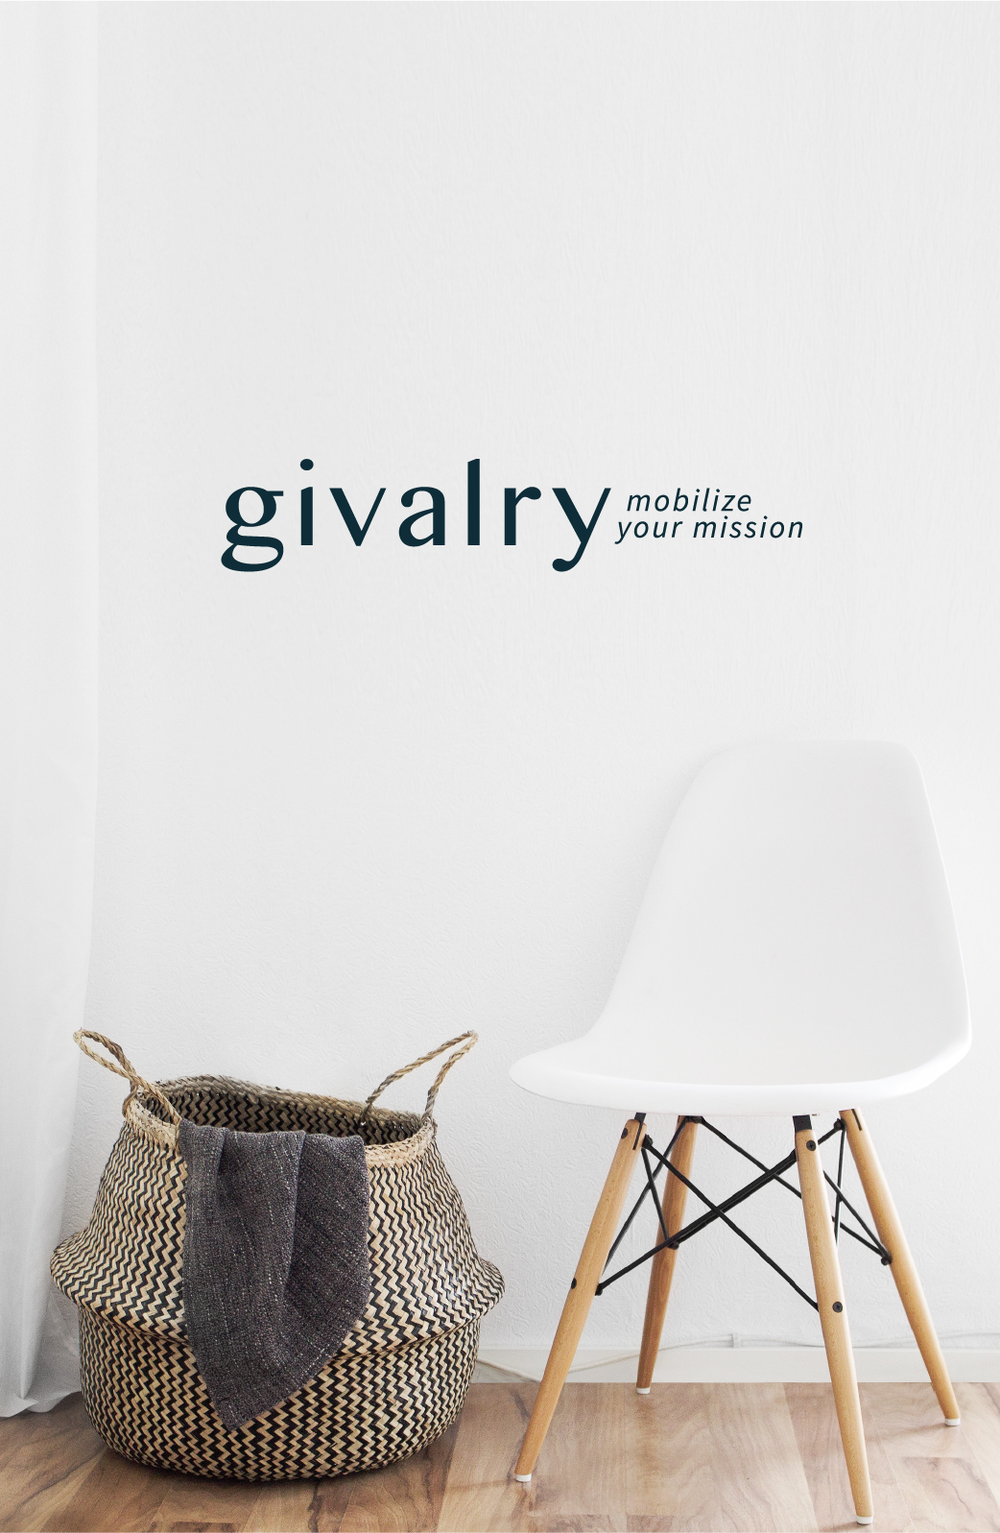 Givarly logo on a photo of a chair and a wicker basket with a blanket